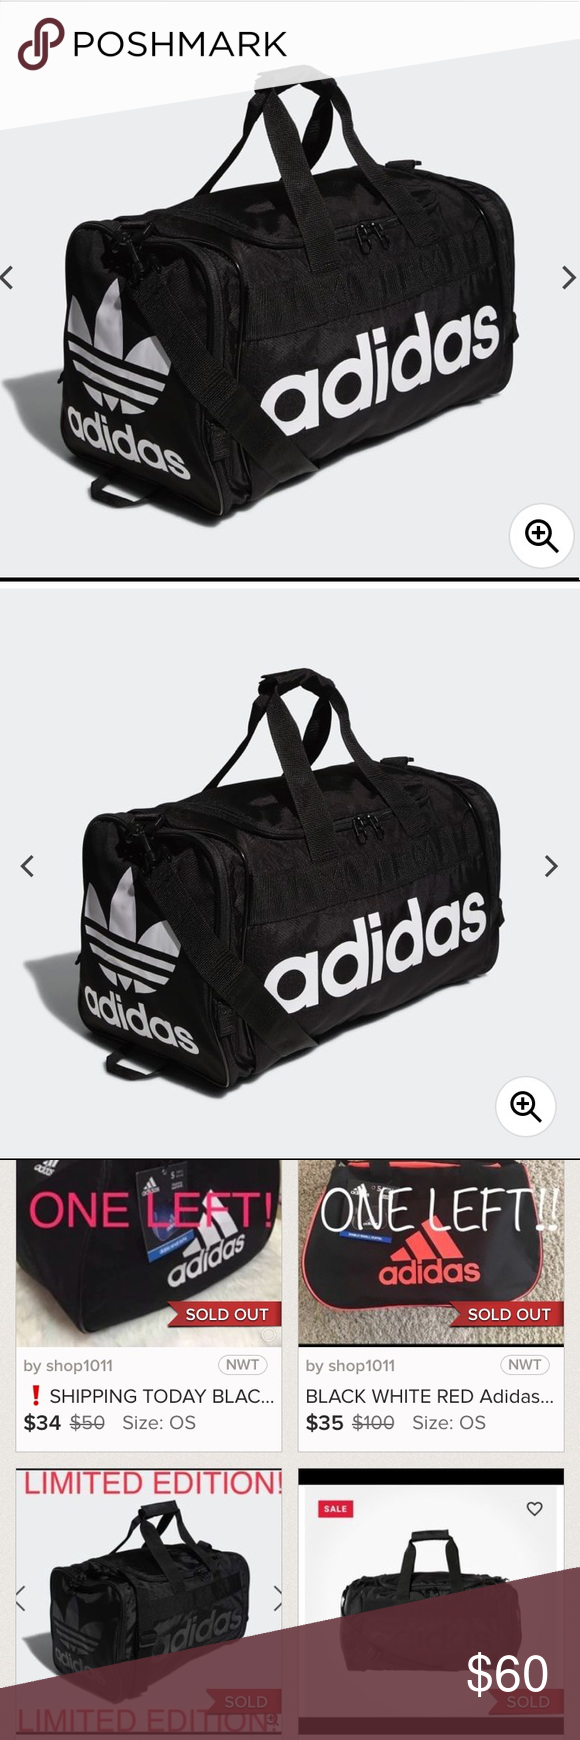 Large Adidas Duffle Travel Gym Bag Dimensions 21 5 X 11